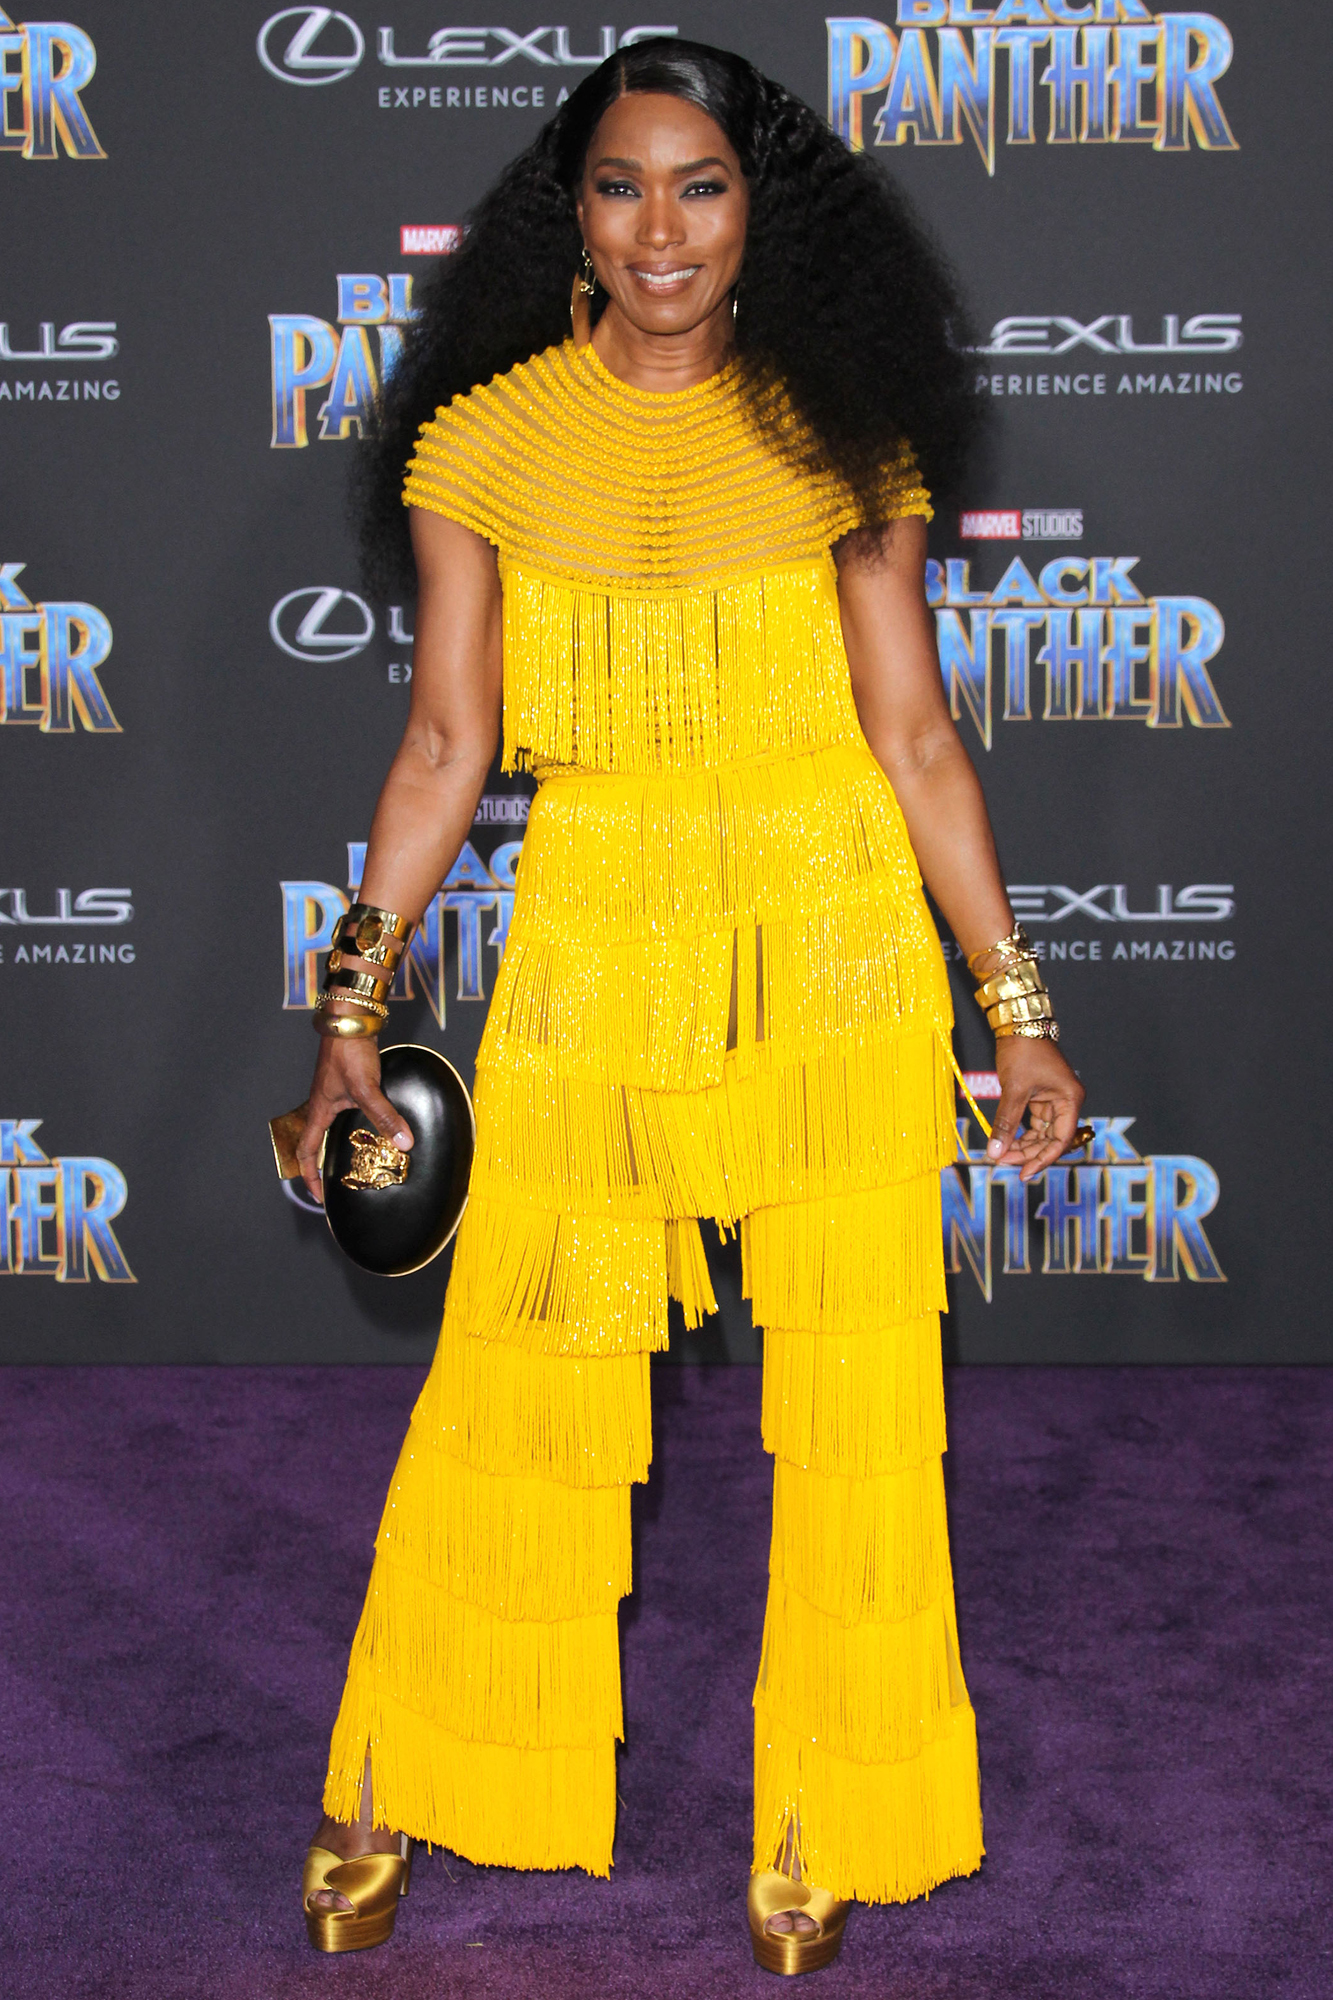 Black Panther film premiere Arrivals Los Angeles USA  29 Jan 2018